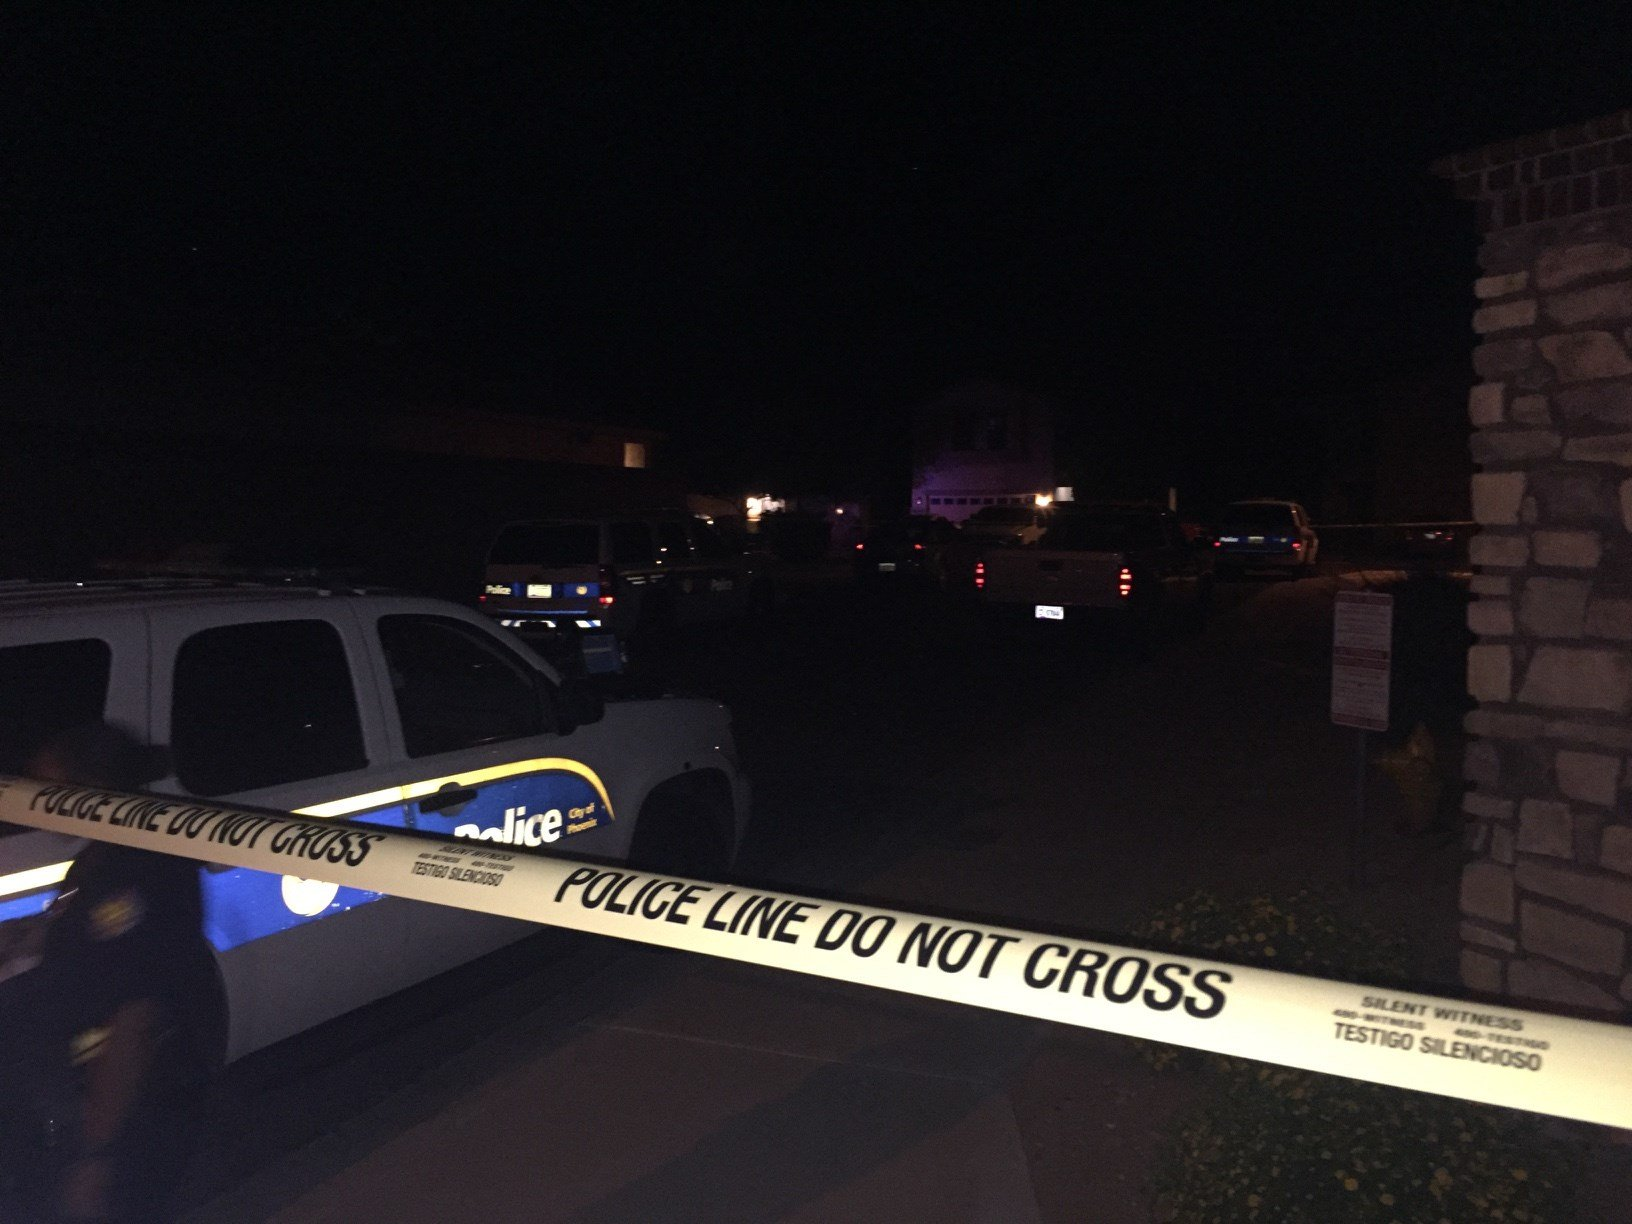 A suspect was shot after he refused to drop a kitchen knife, police said. (Source: 3TV/CBS 5)